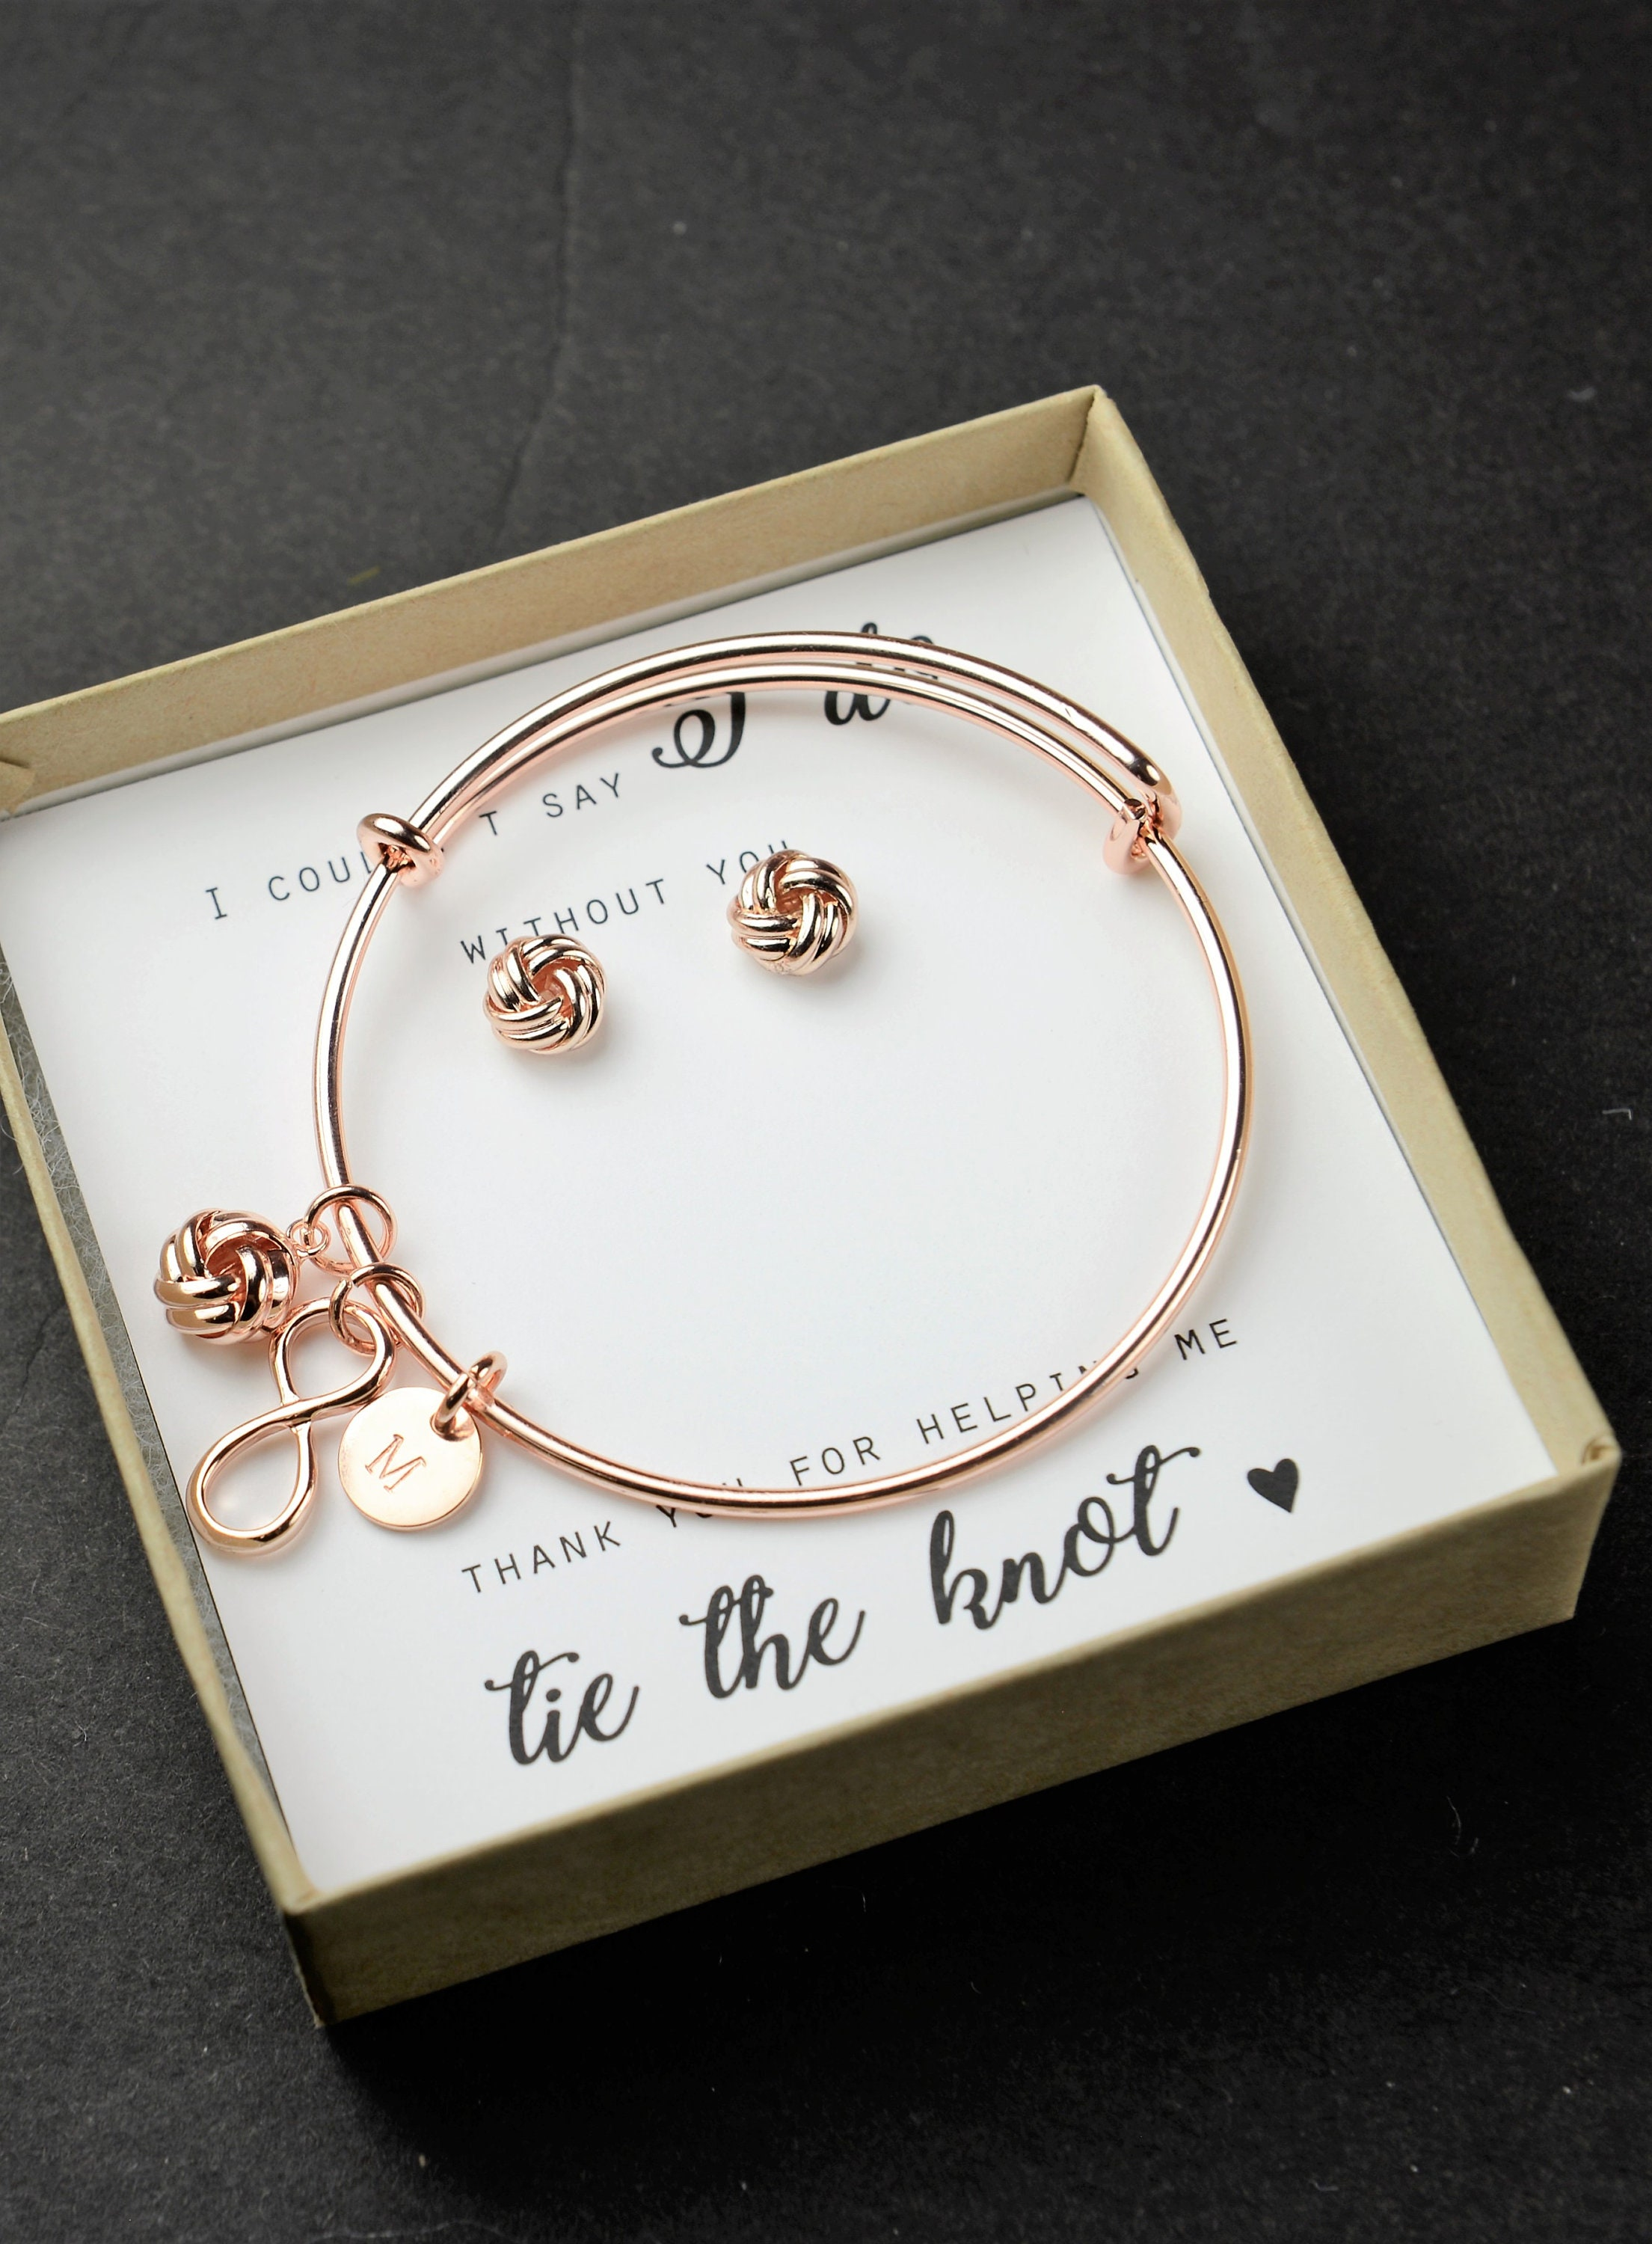 Knot Bracelet Bridesmaid Thank You for Helping us Tie the Knot ...